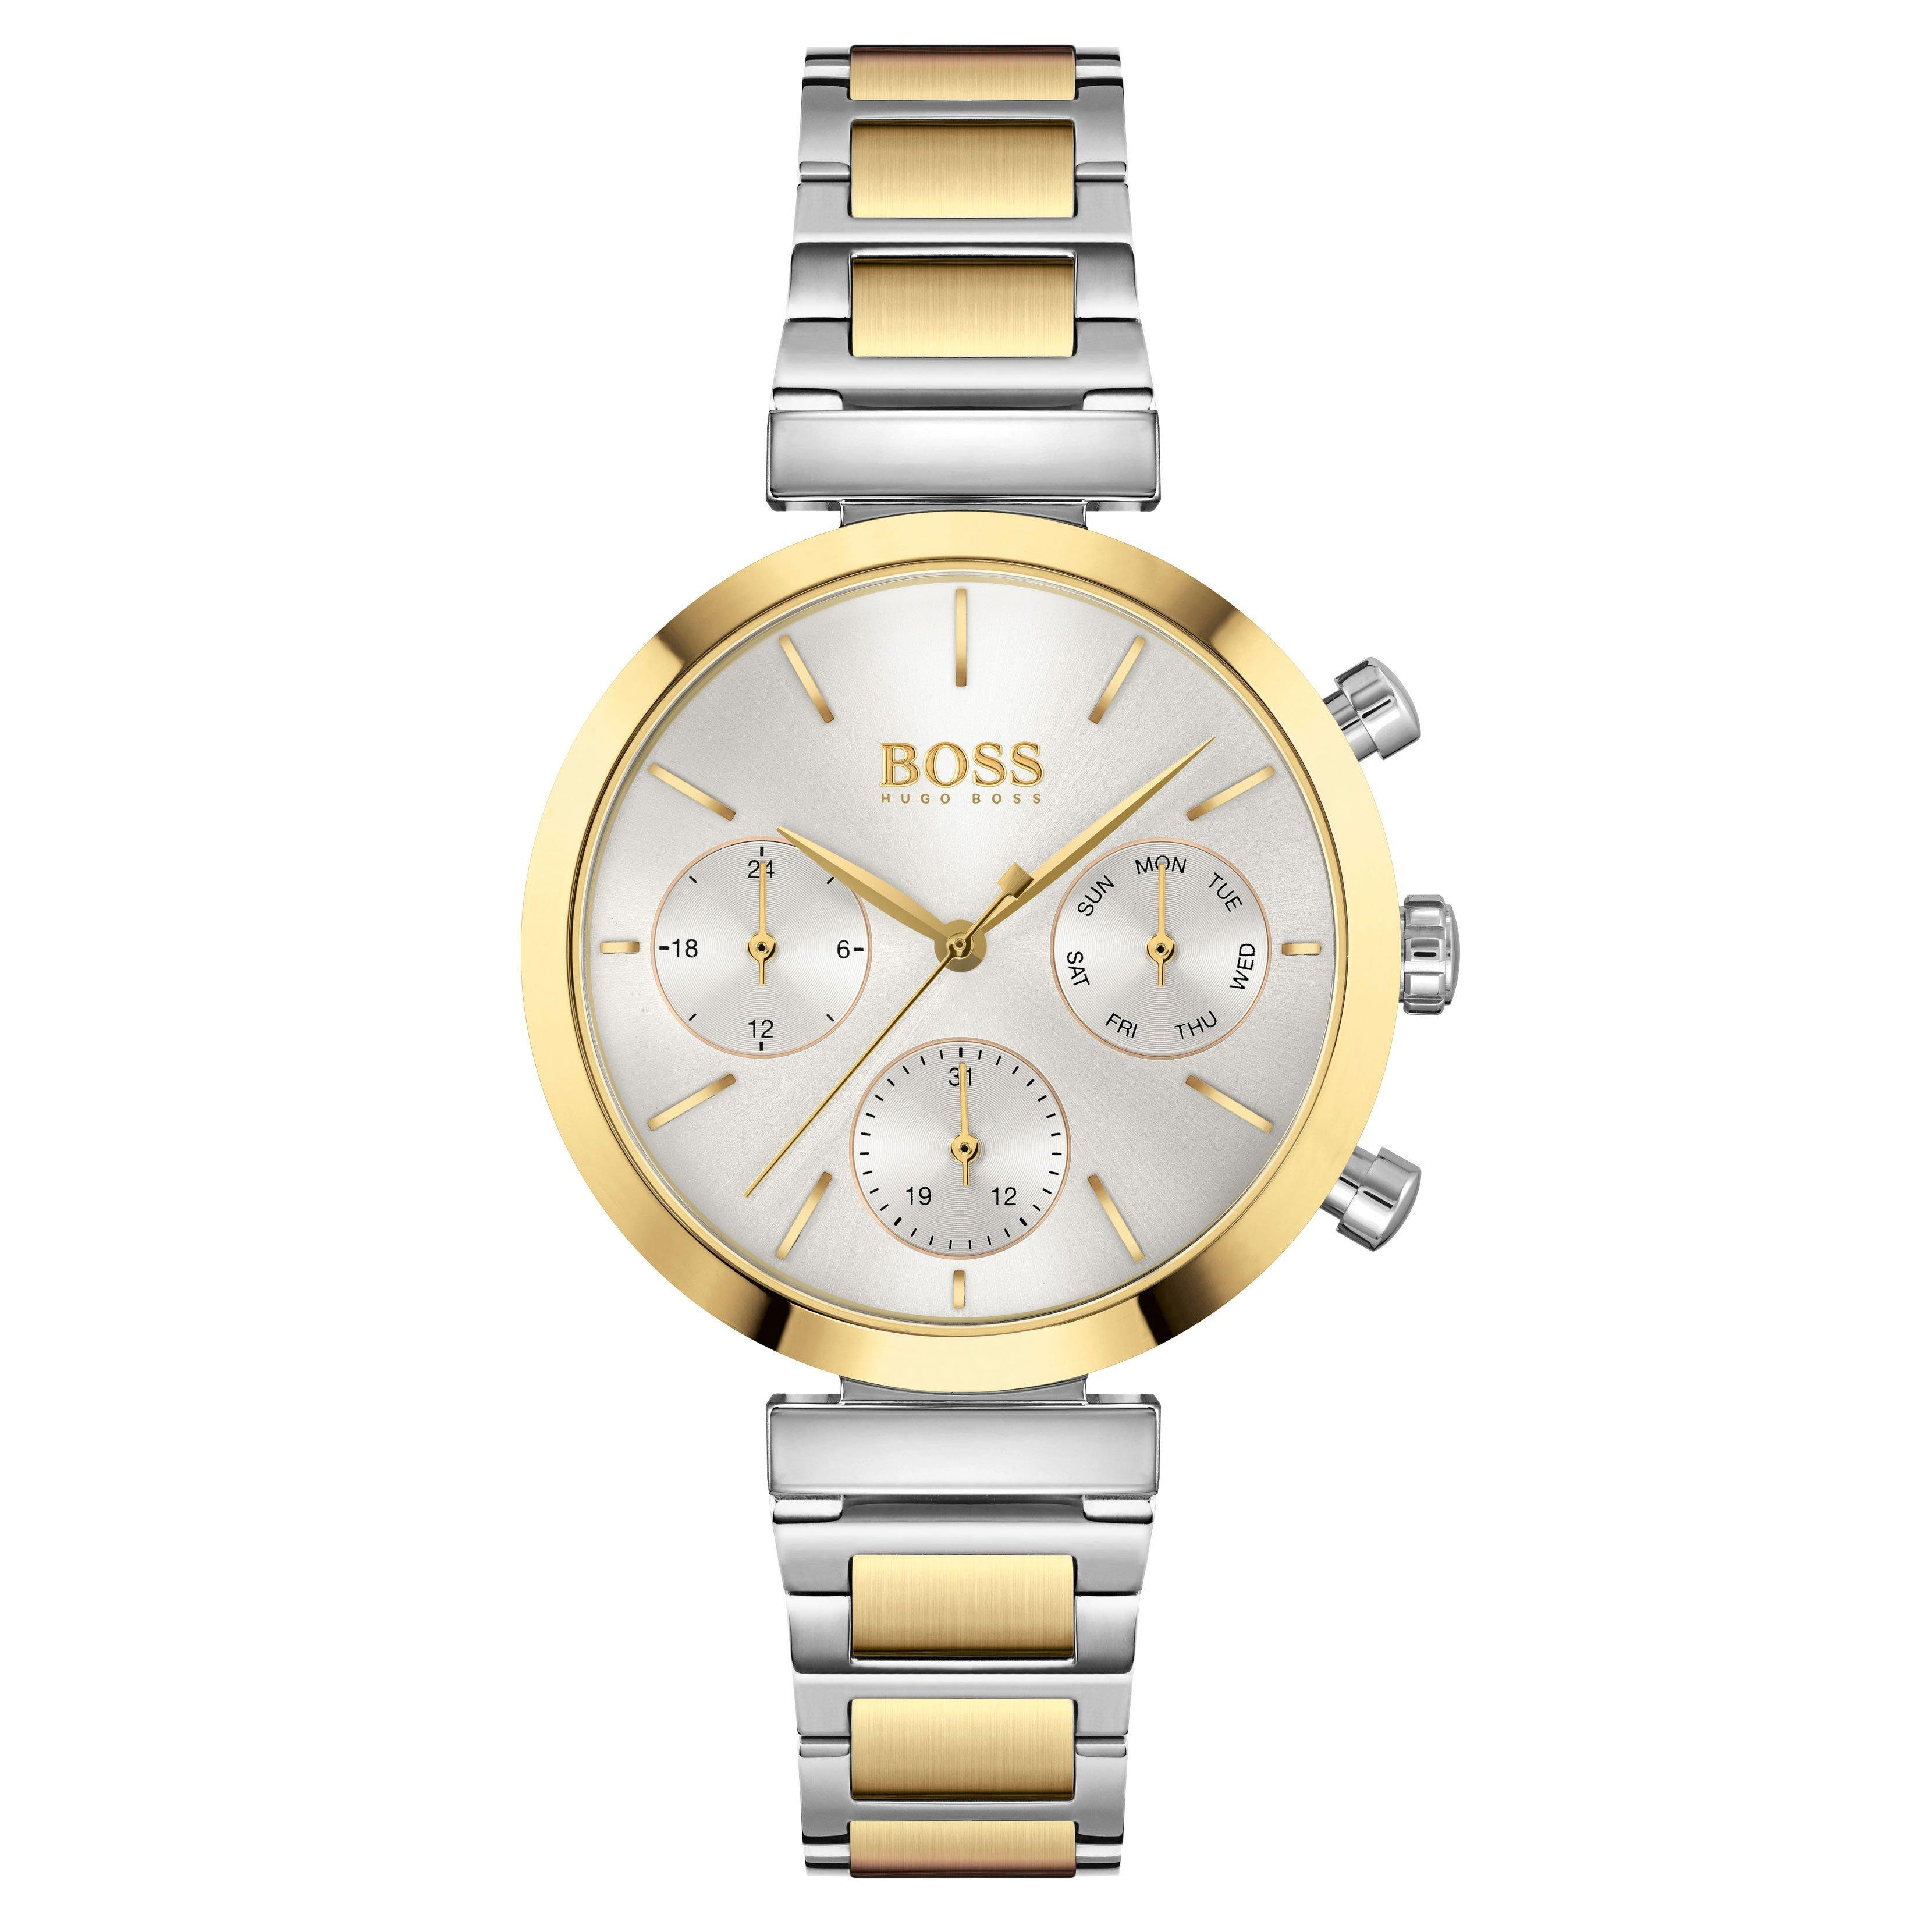 BOSS Flawless Steel and Gold Tone Chronograph Ladies Watch